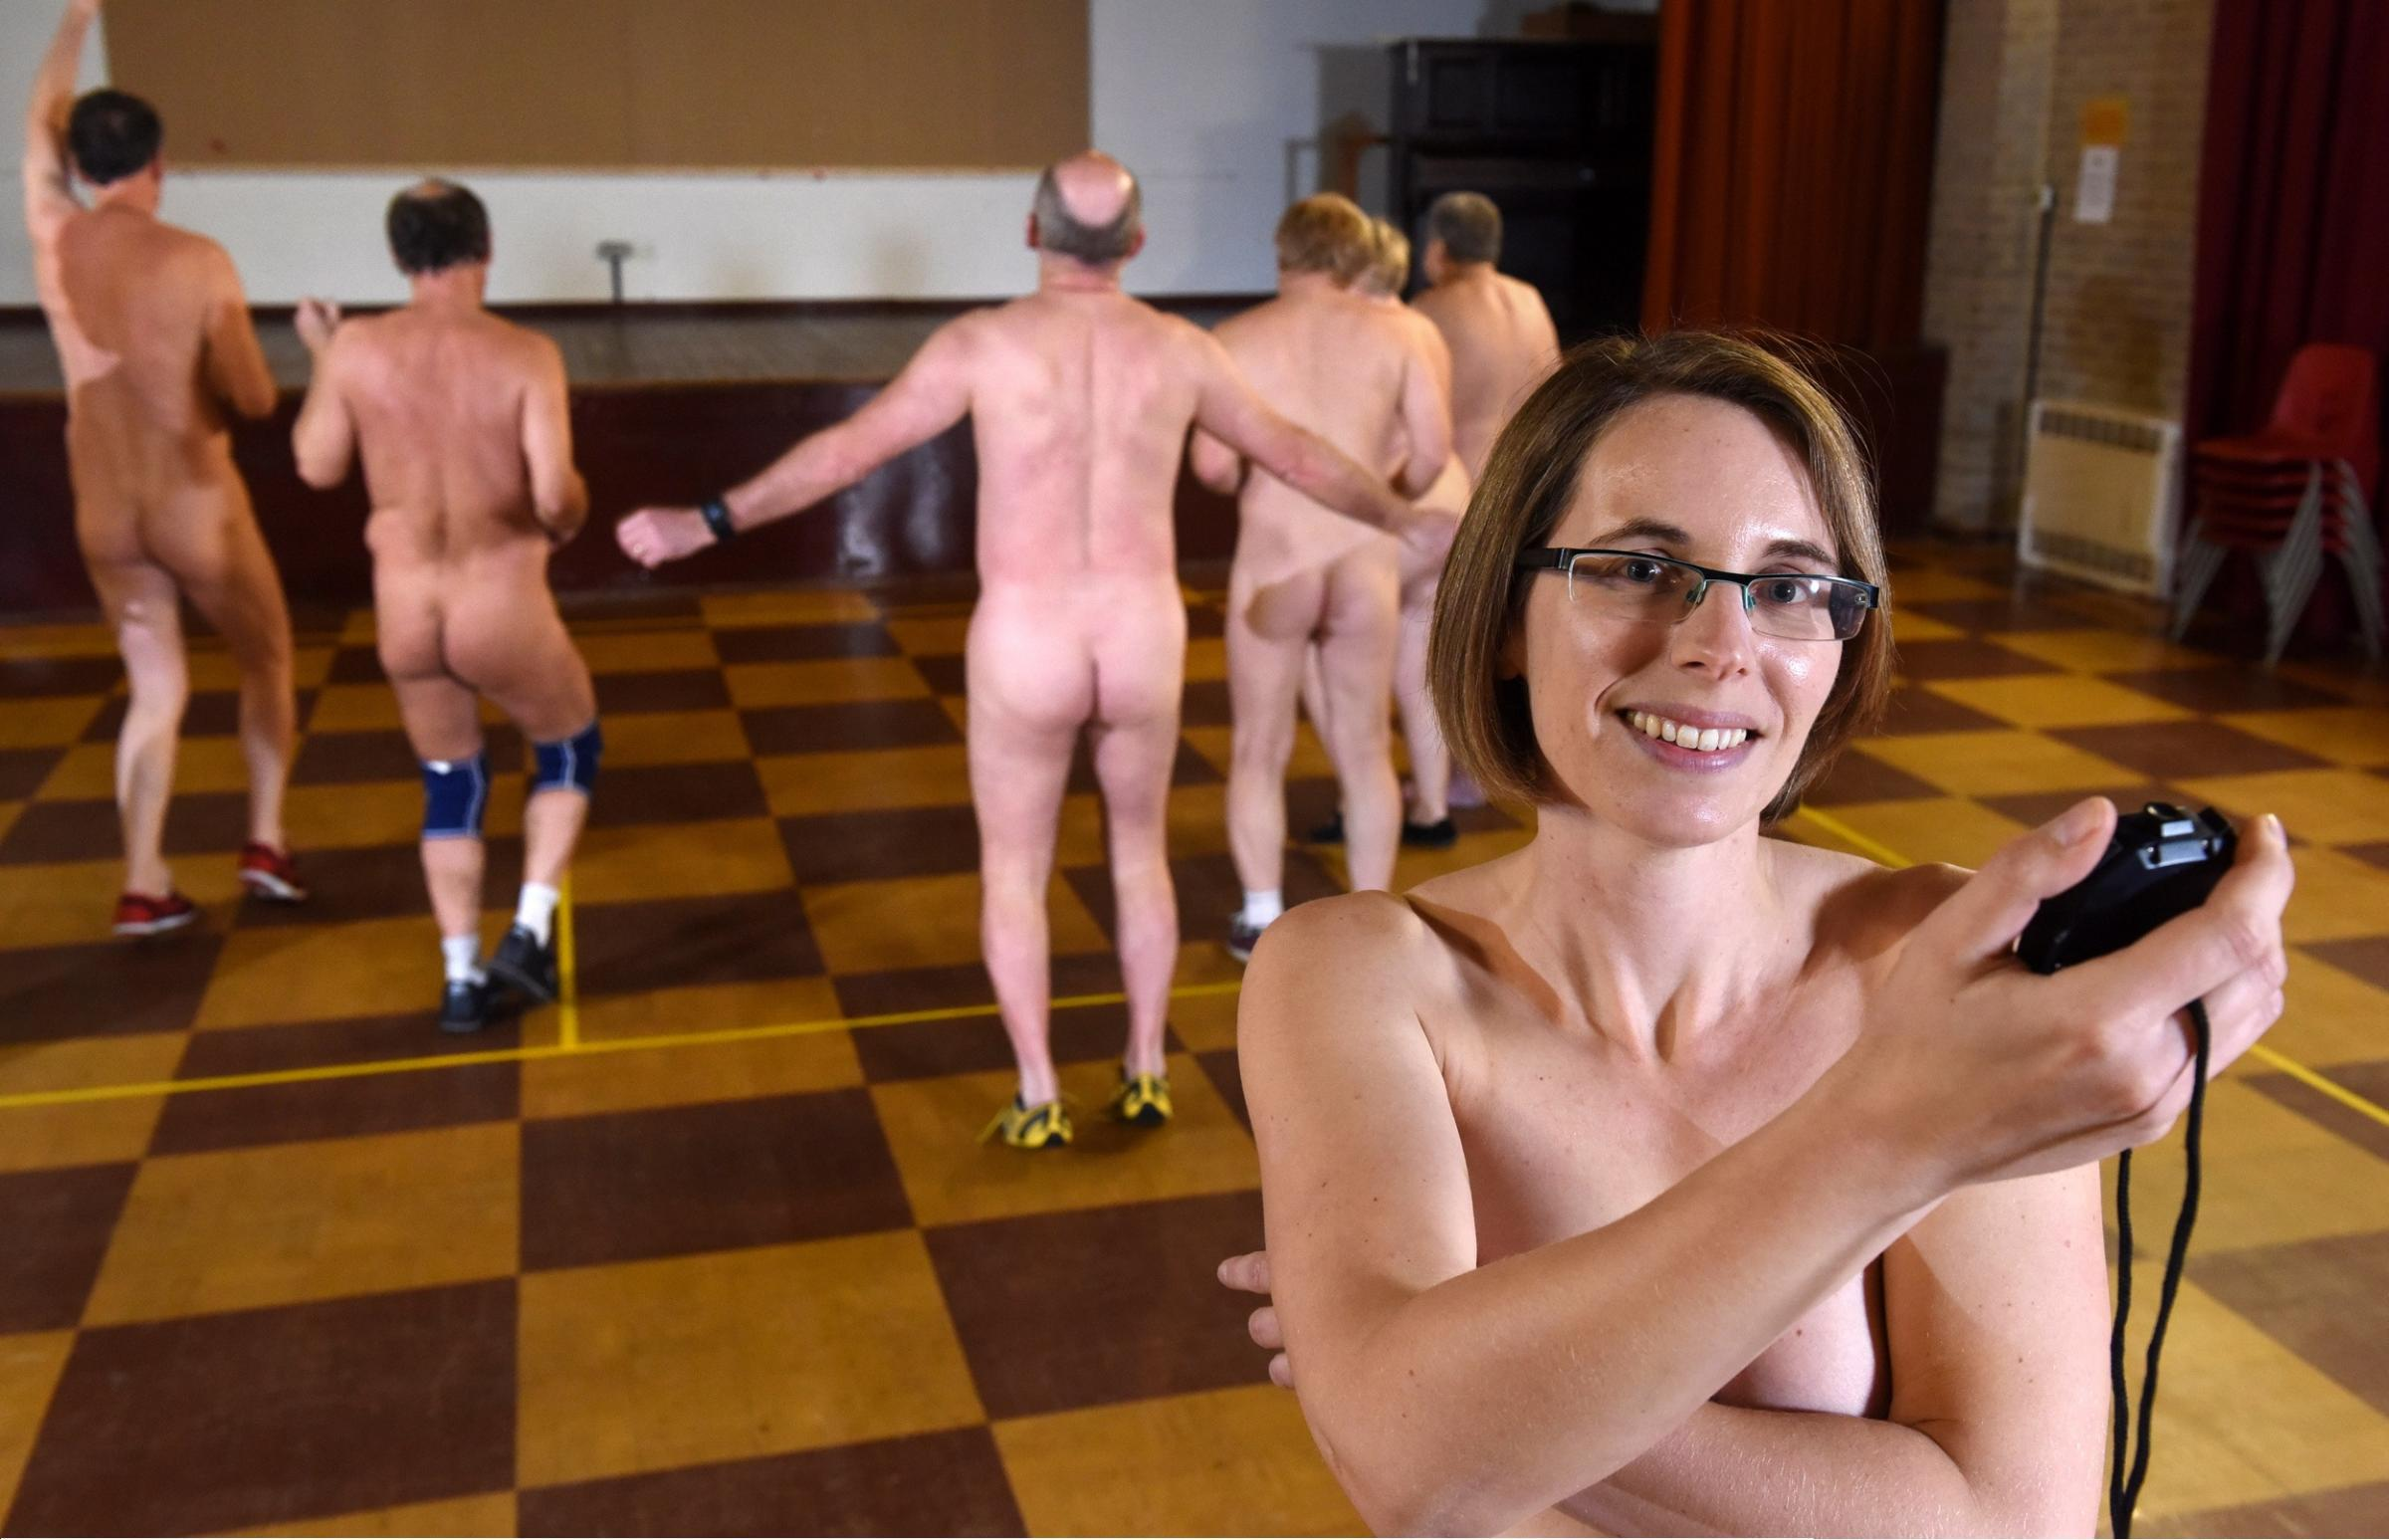 Nudist exercise files